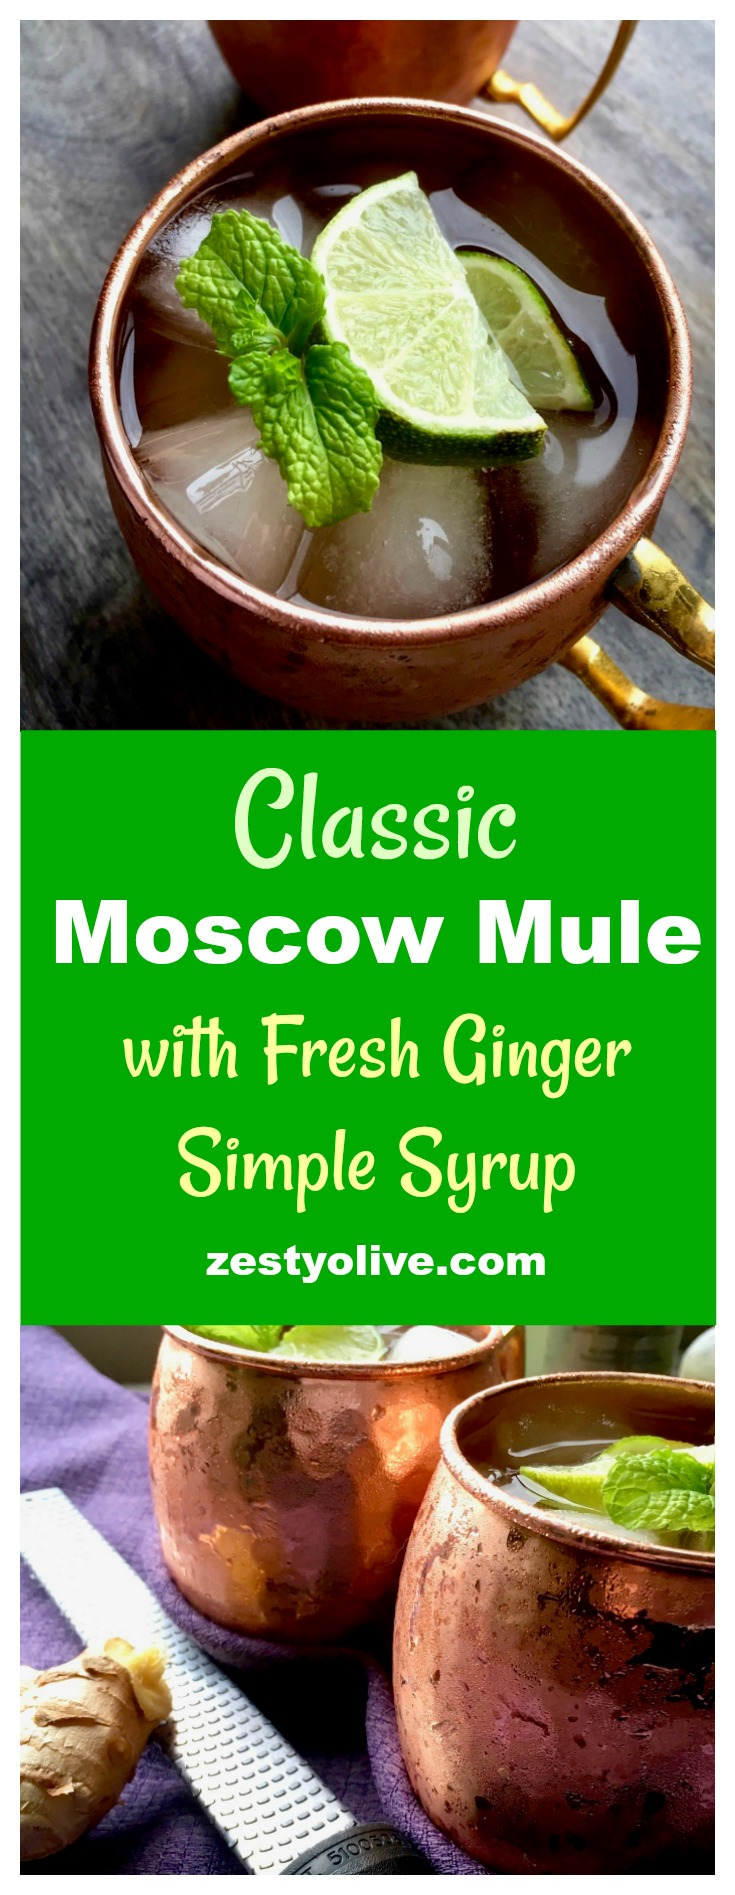 Although Moscow Mules are meant to be enjoyed ice cold, there is something inherently comforting about the warm, spicy notes of ginger found in this classic cocktail.